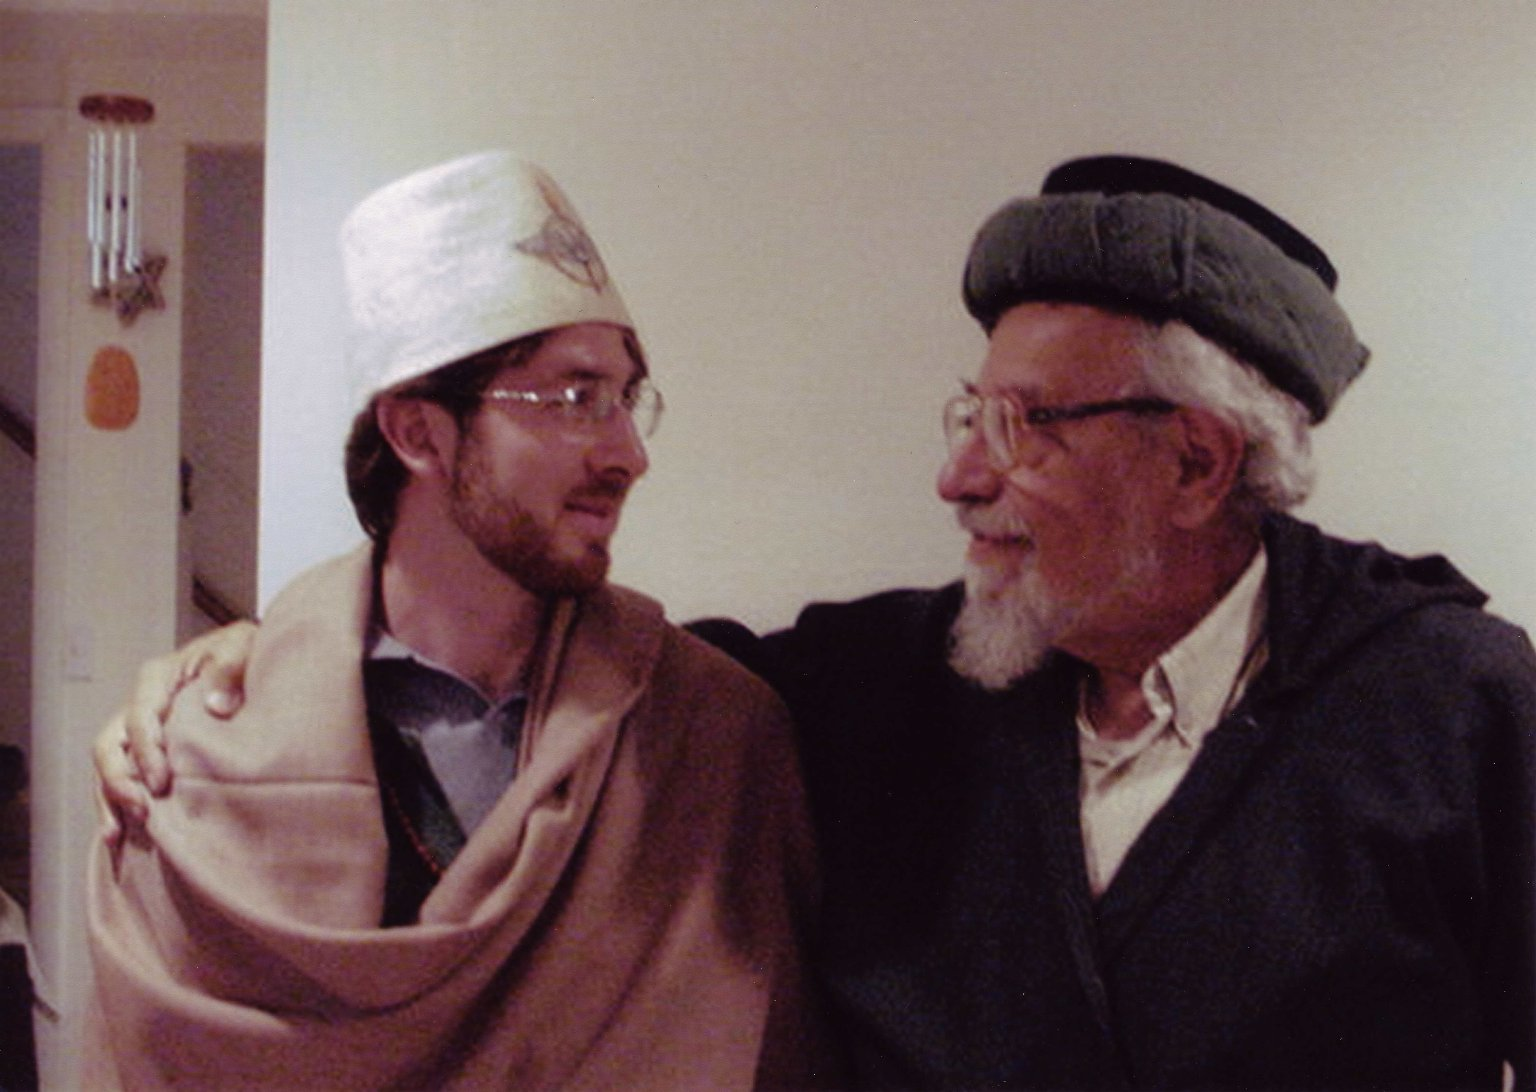 Chiragh Netanel Miles-Yepez and Murshid Zalman Schachter-Shalomi after Netanel's Sufi chiragh ordination at Schachter-Shalomi's home in Boulder, Colorado, on August 1, 2002.